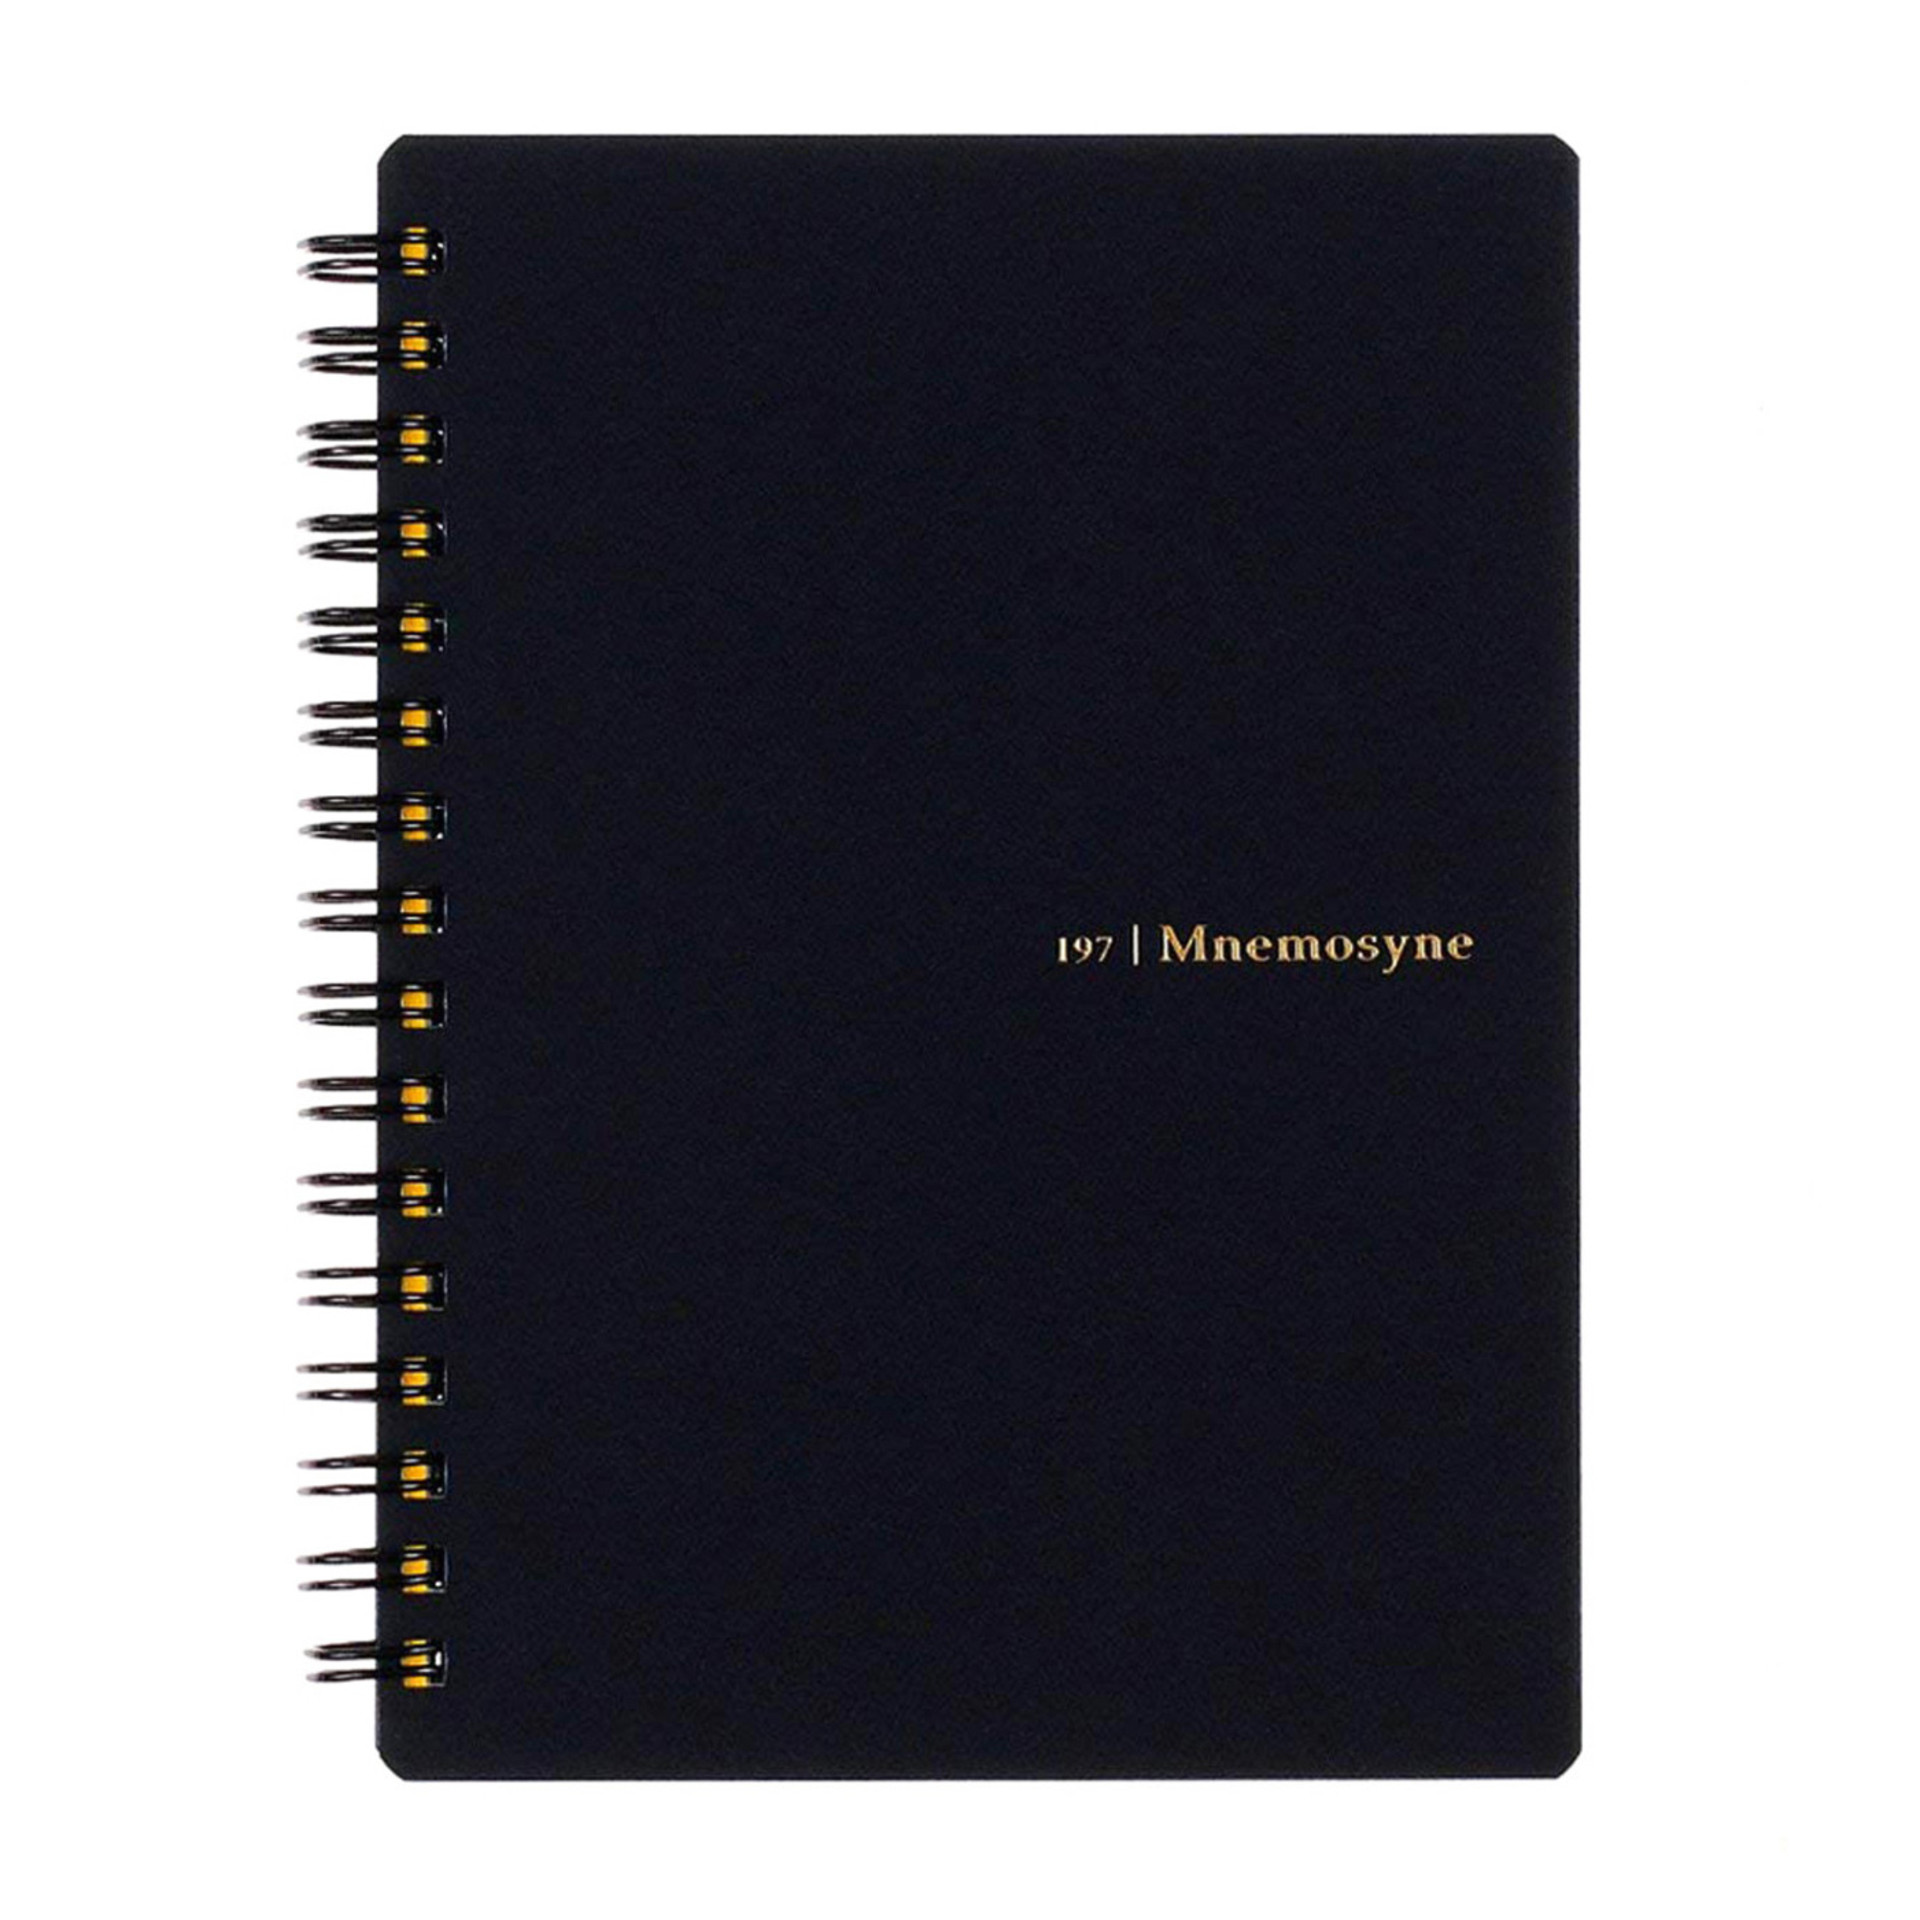 Maruman Black Mnemosyne A6 Lined Spiral Daily Notebook